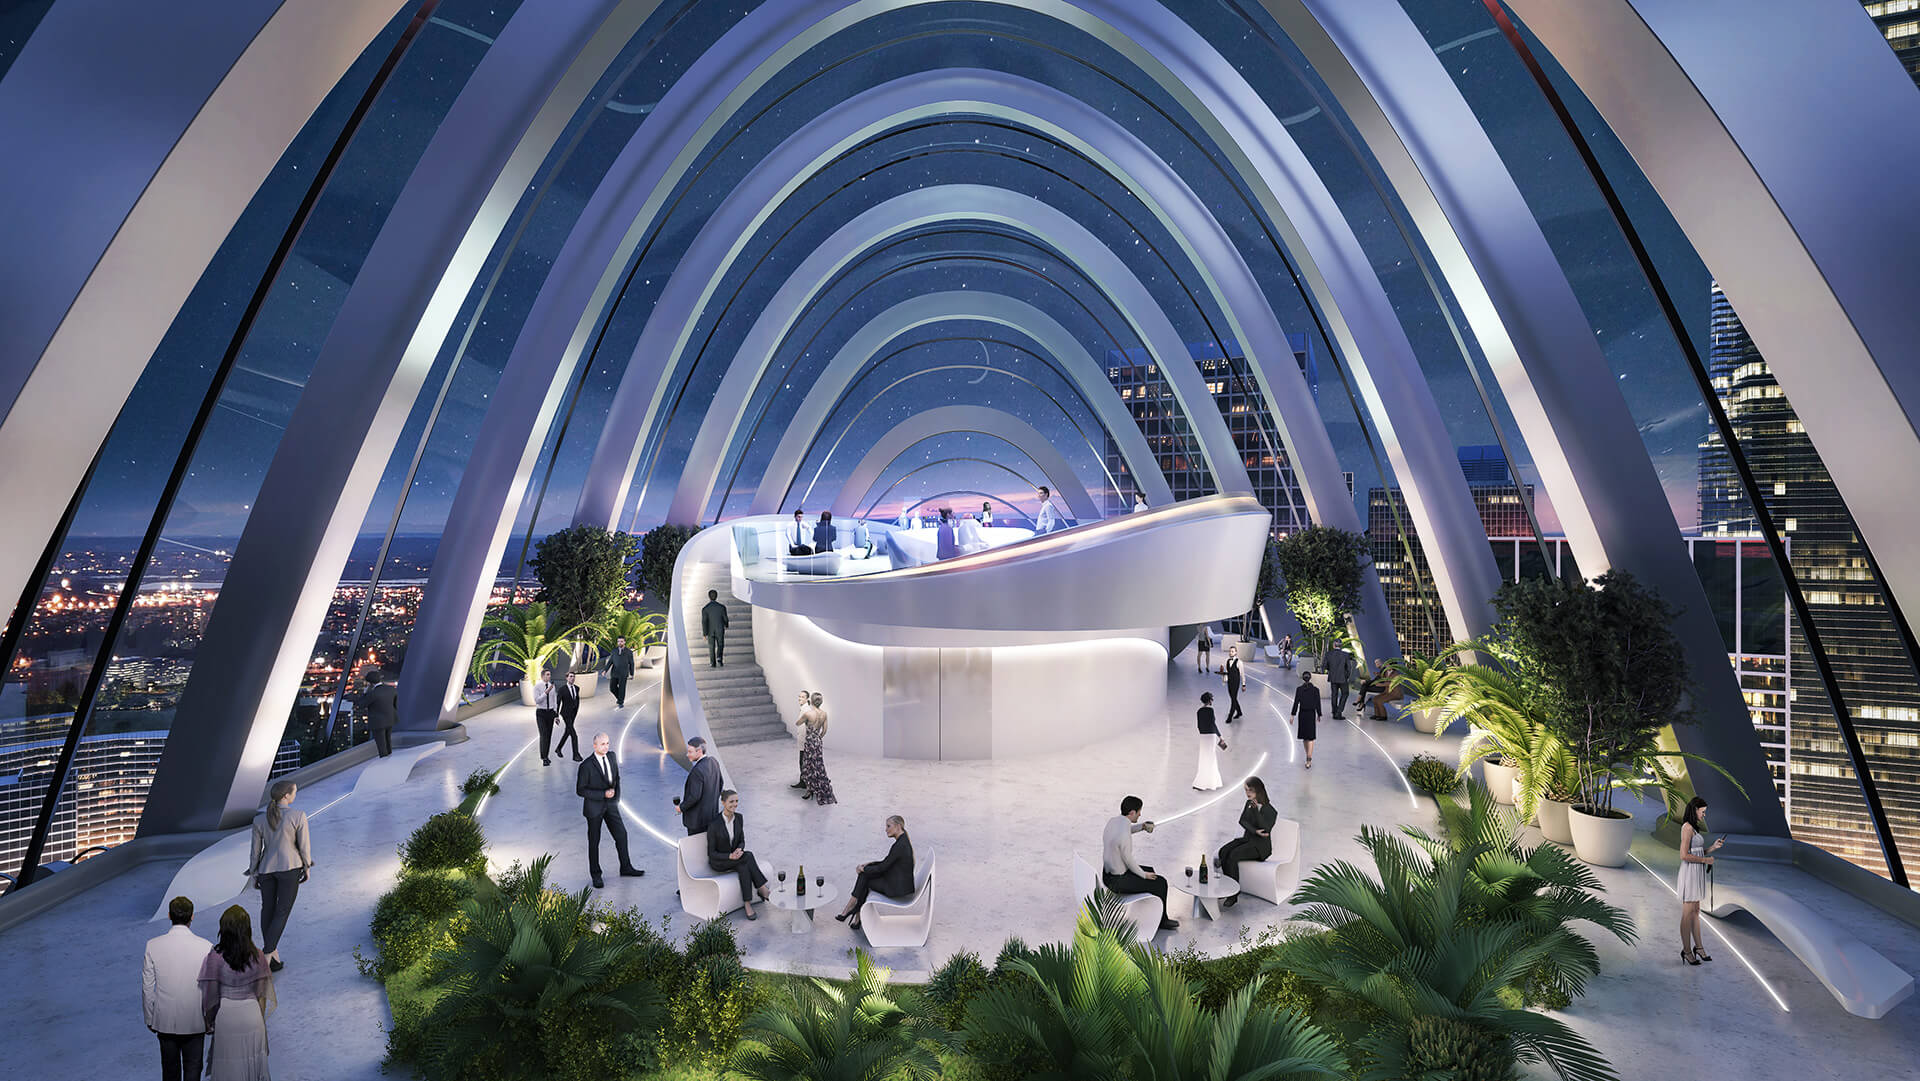 The 10th floor of the building will host the Sky Plaza, which will provide diverse dining experiences | OPPO Headquarters | Zaha Hadid Architects | STIRworld